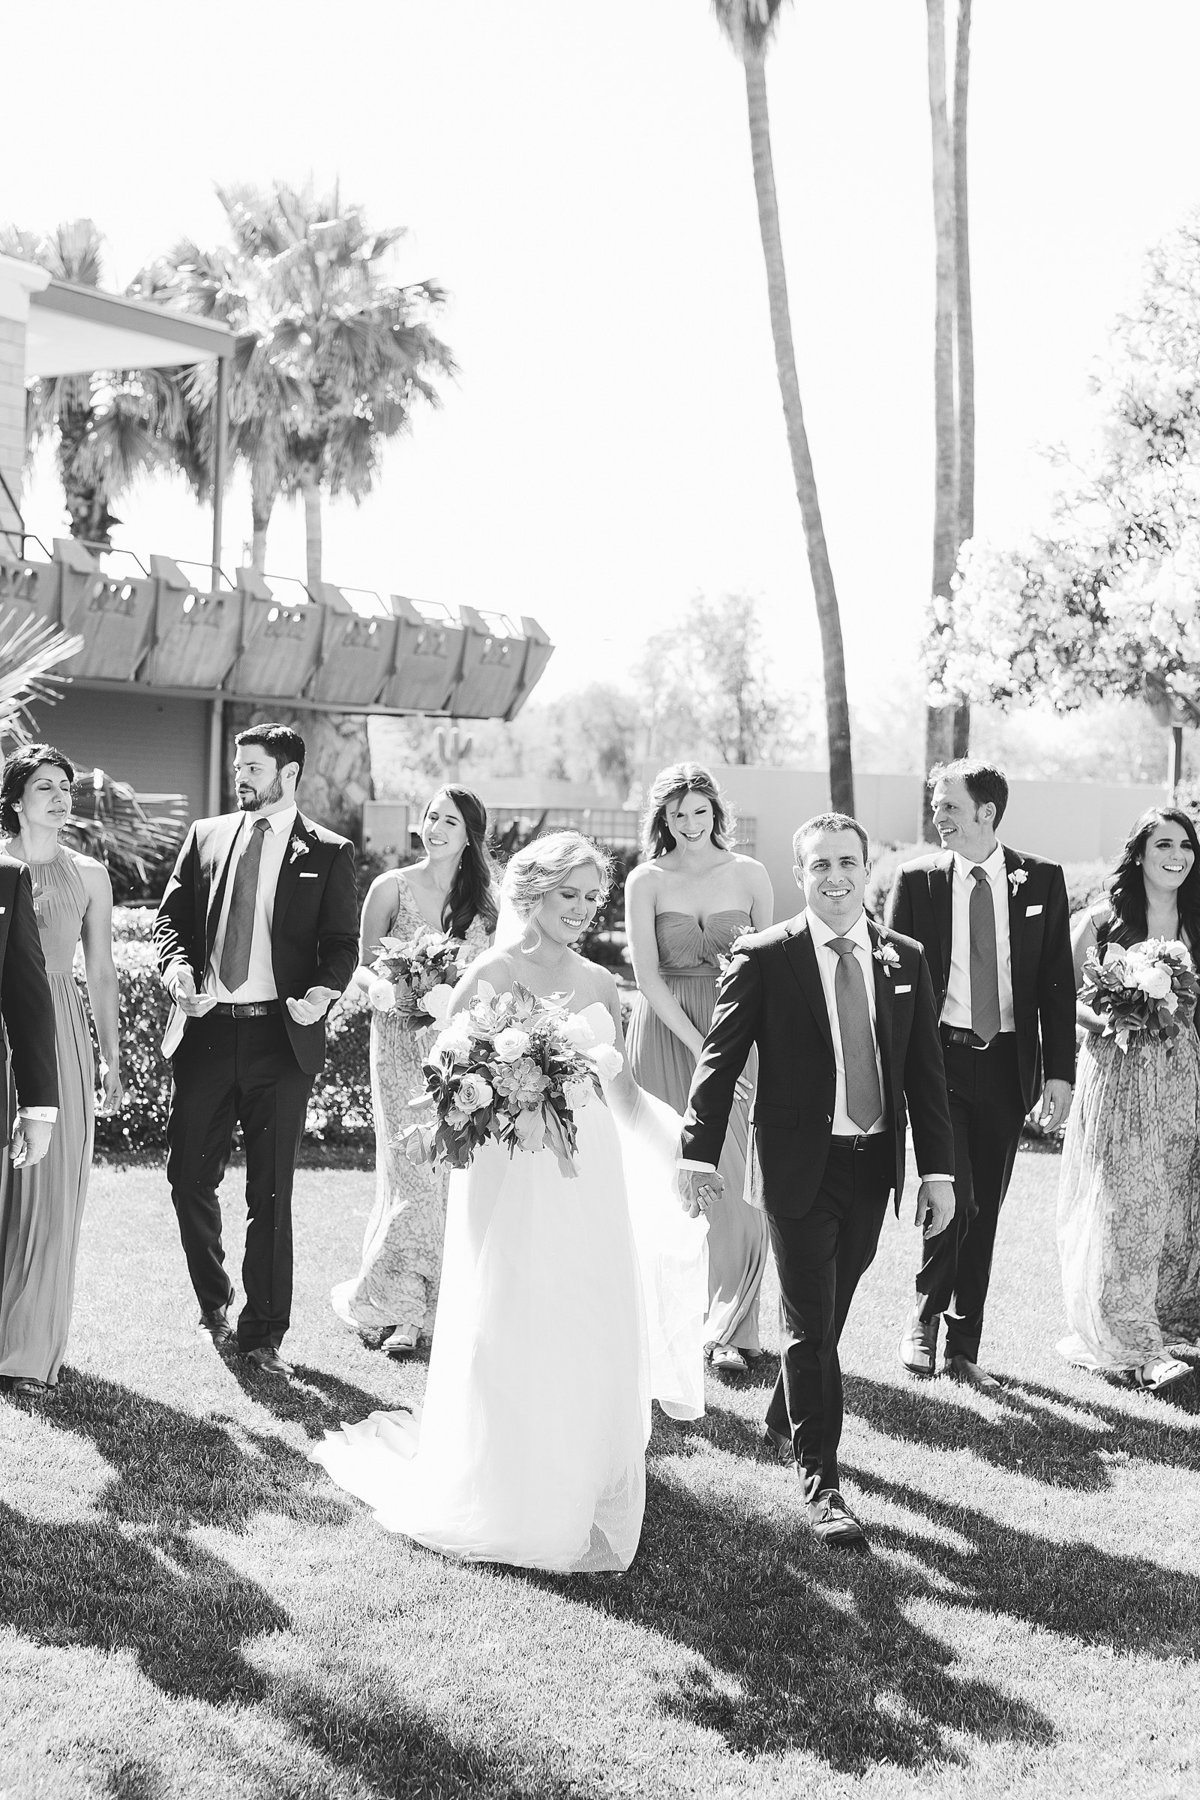 Liz + Mike - Hotel Valley Ho Wedding - Lunabear Studios - Bright and Airy Wedding Photography_0106